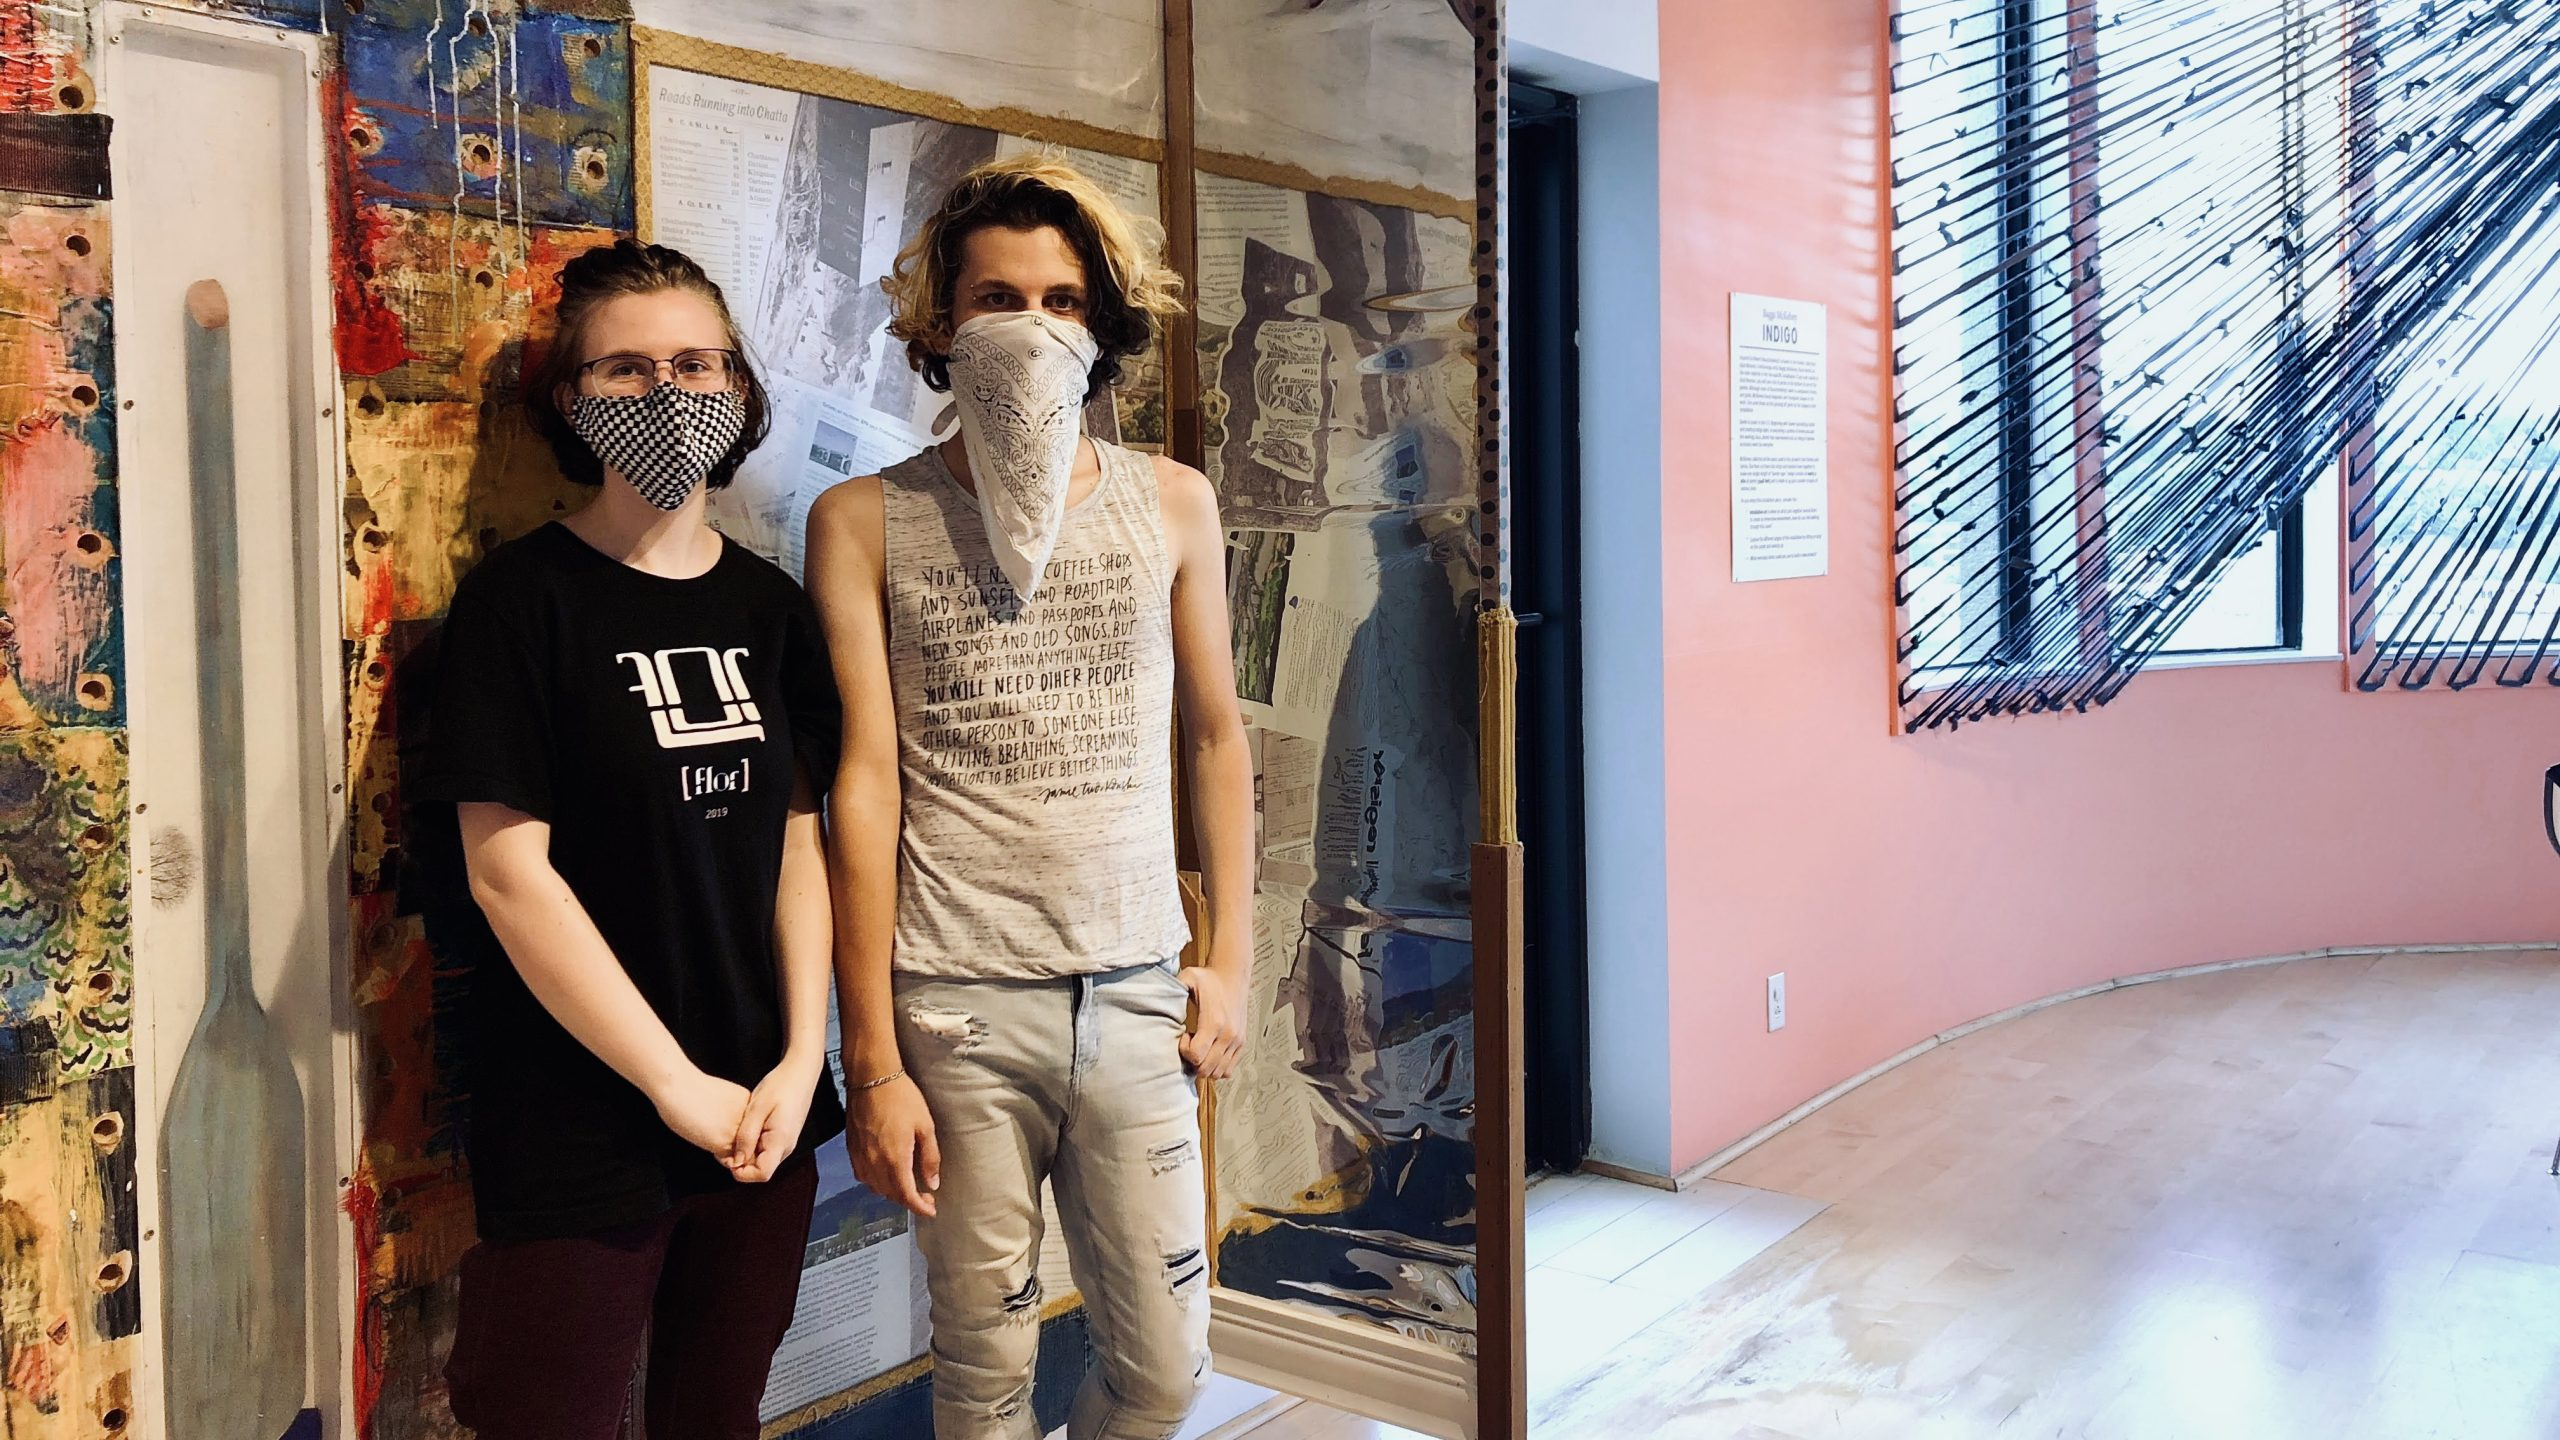 Two teens stand in front of colorful collage on the wall. They are wearing face masks.